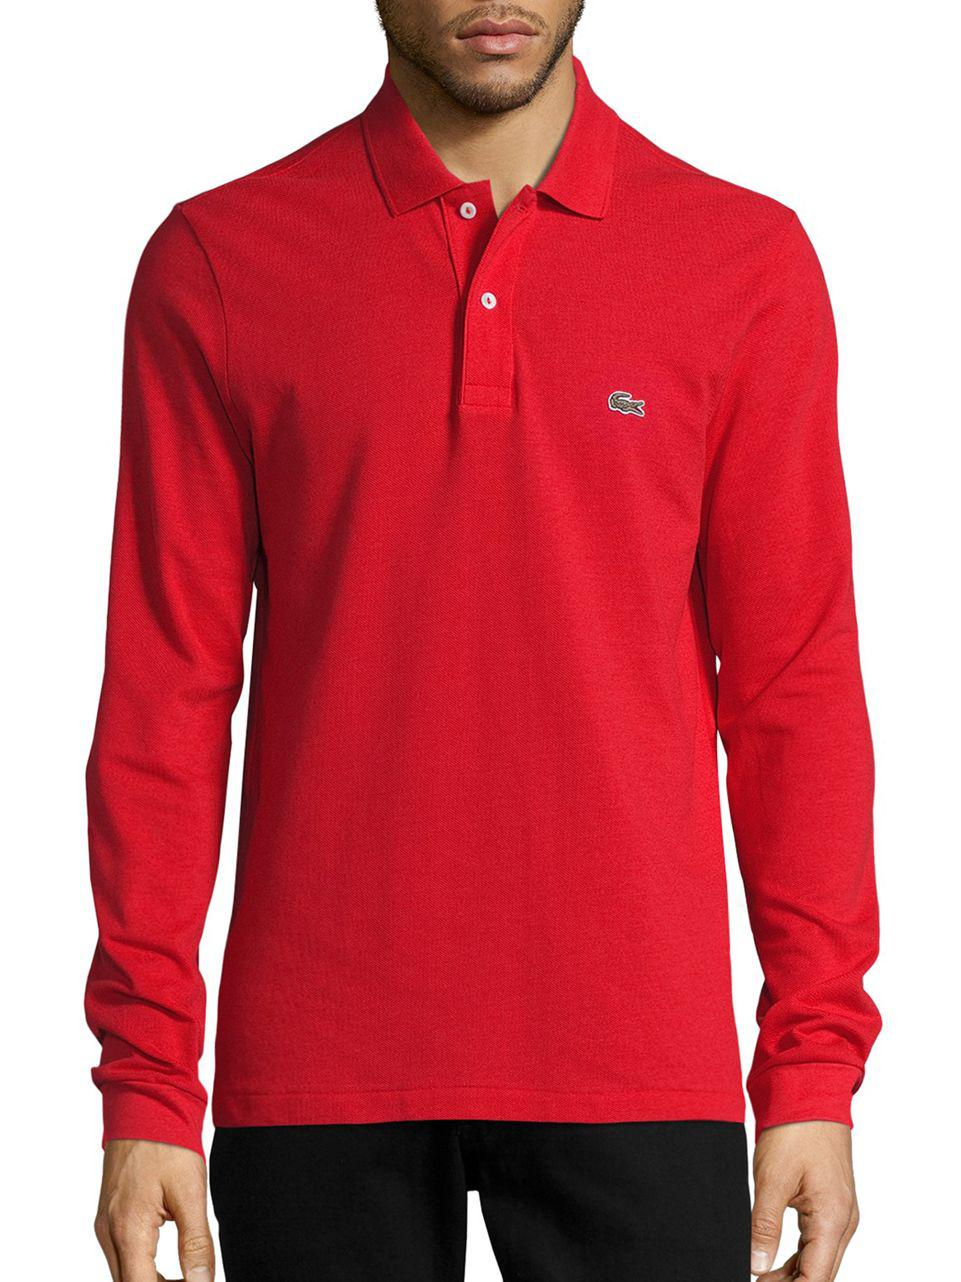 Lyst Lacoste Pique Polo Shirt In Red For Men